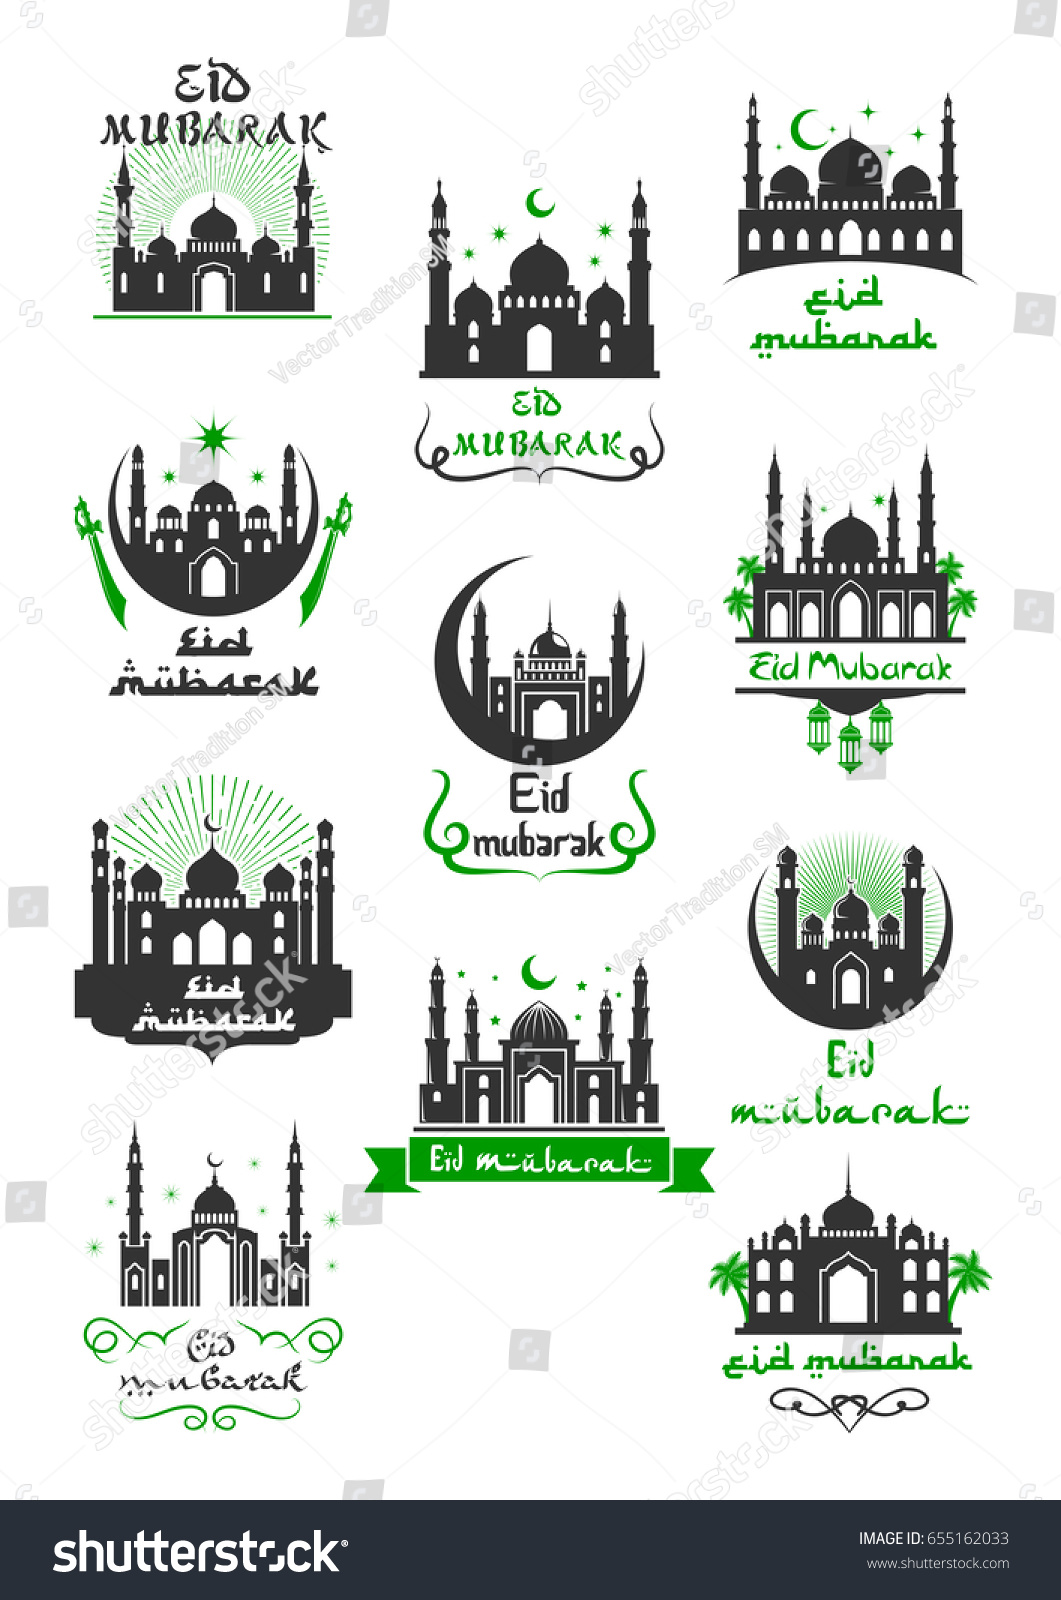 Eid Mubarak Muslim Greeting Icon Ramadan Stock Vector Royalty Free